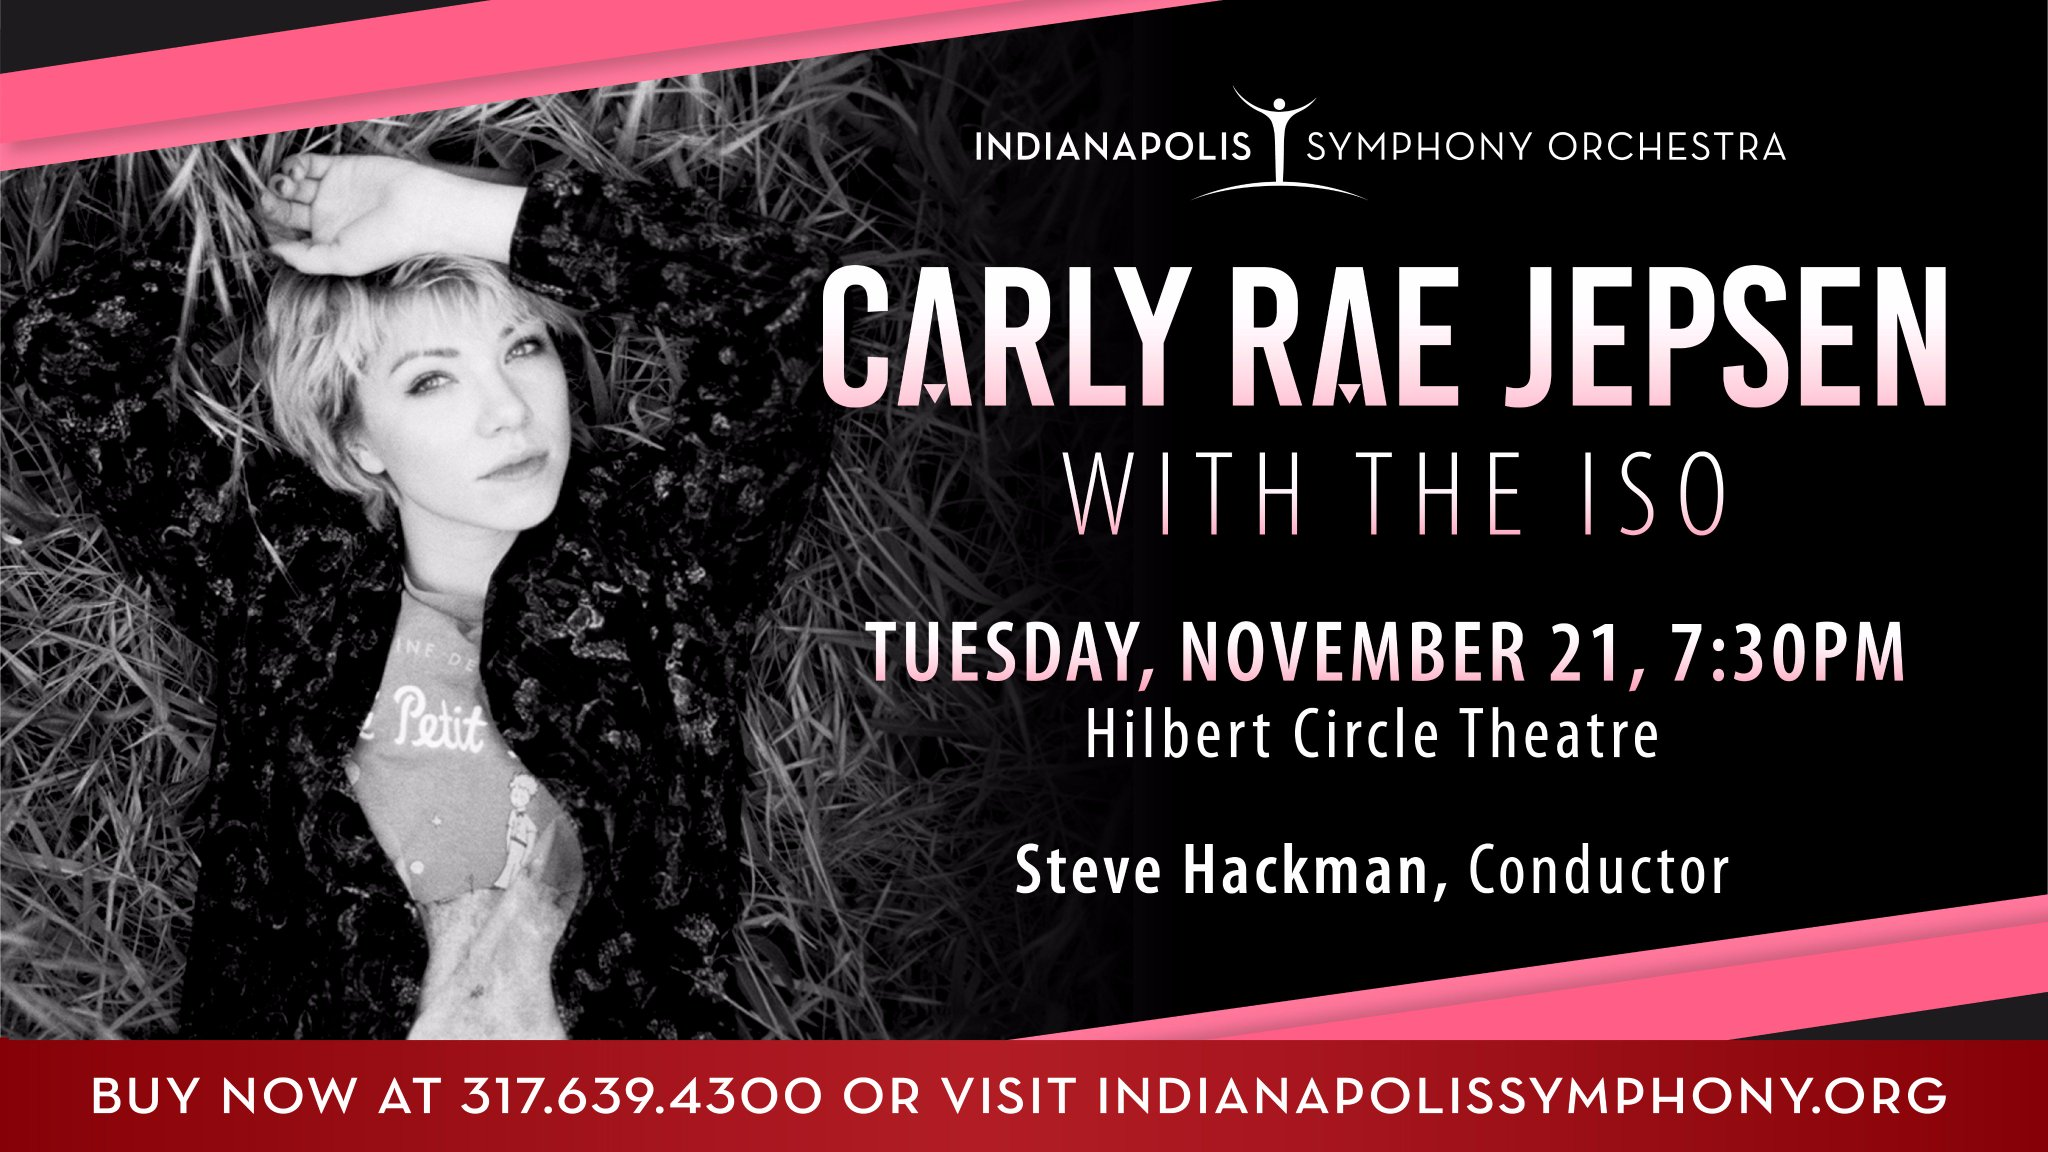 Bday haps with the Indiana Symphony Orchestra Nov 21st!! �� Tickets: https://t.co/fIHfpOleA6 https://t.co/9OFhkcxV9n